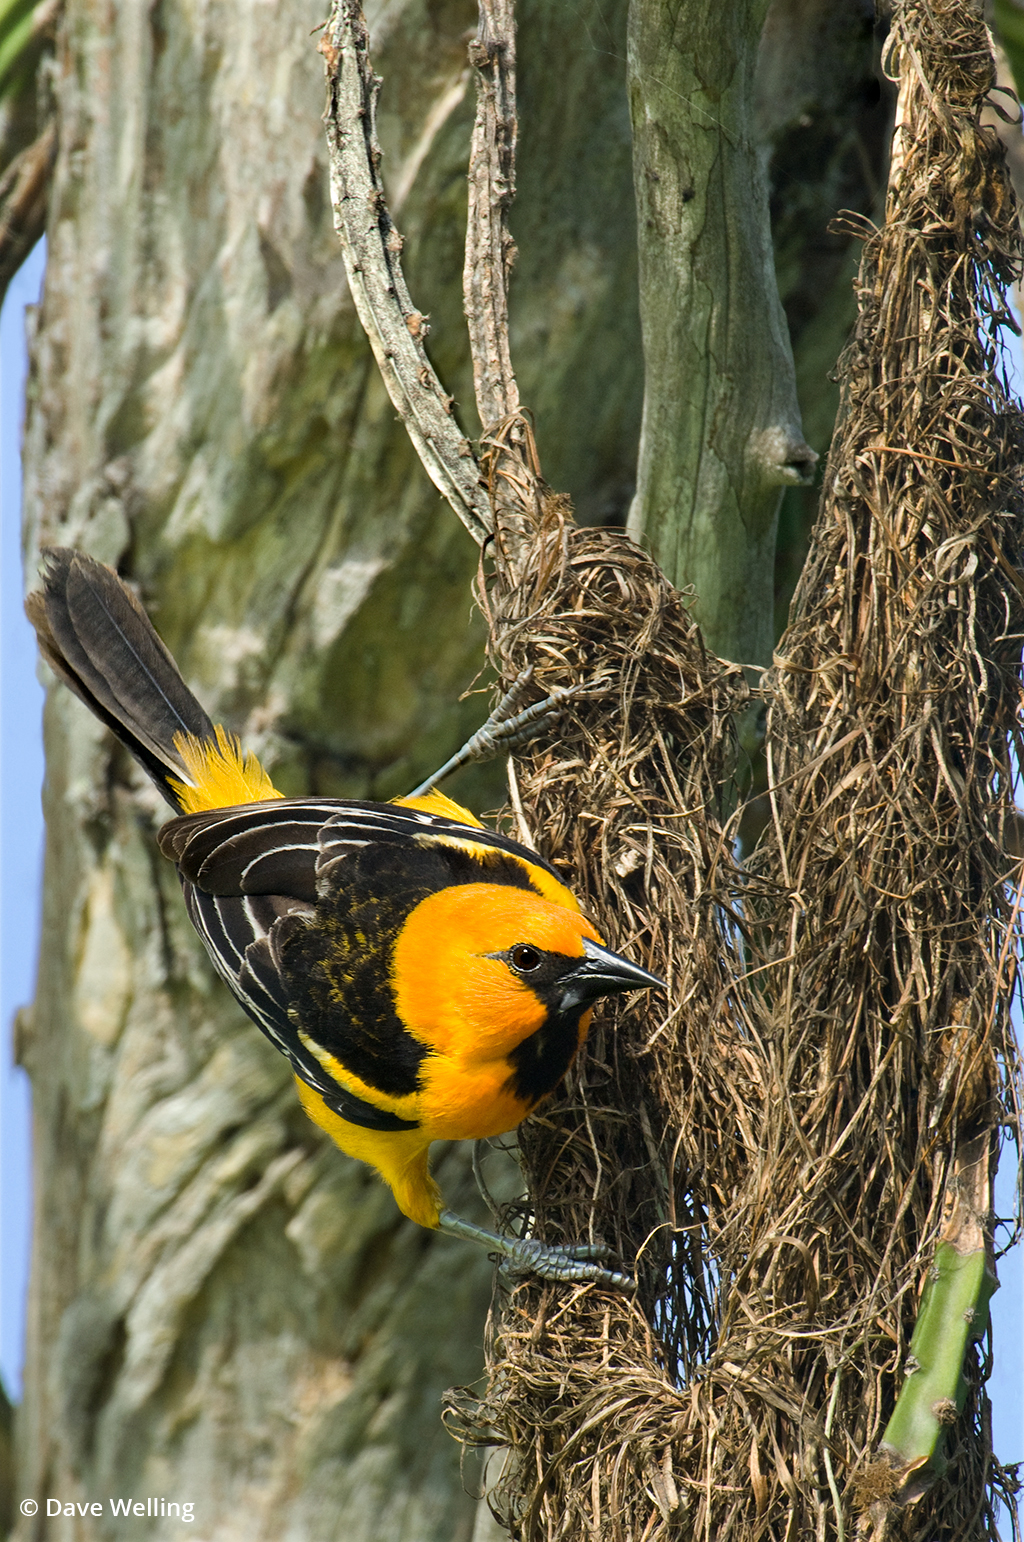 Image of a altamira oriole on a nest.